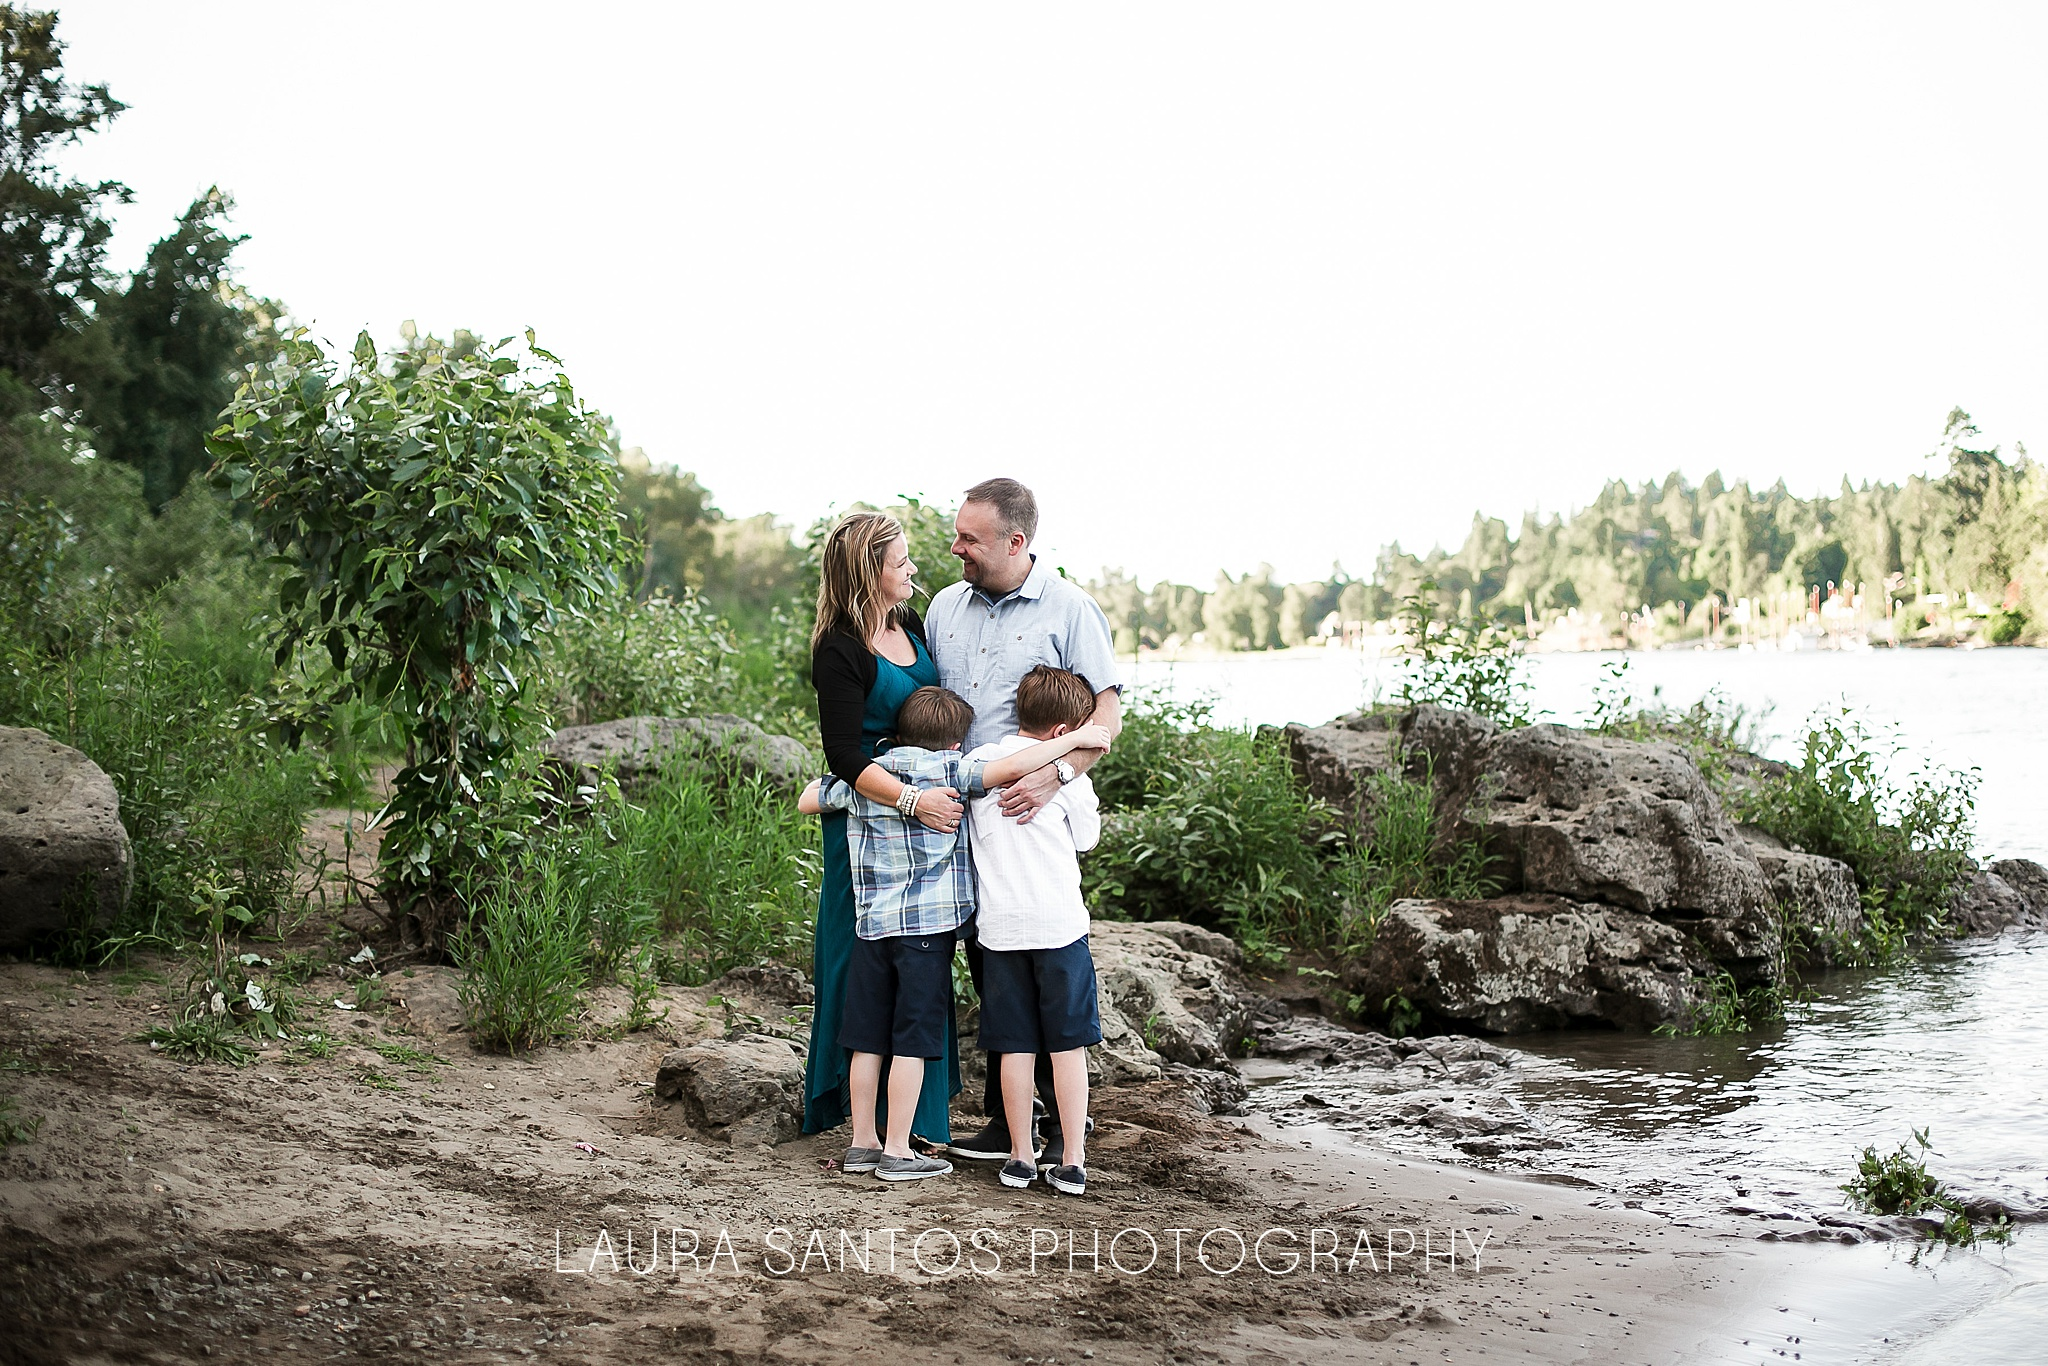 Laura Santos Photography Portland Oregon Family Photographer_1011.jpg